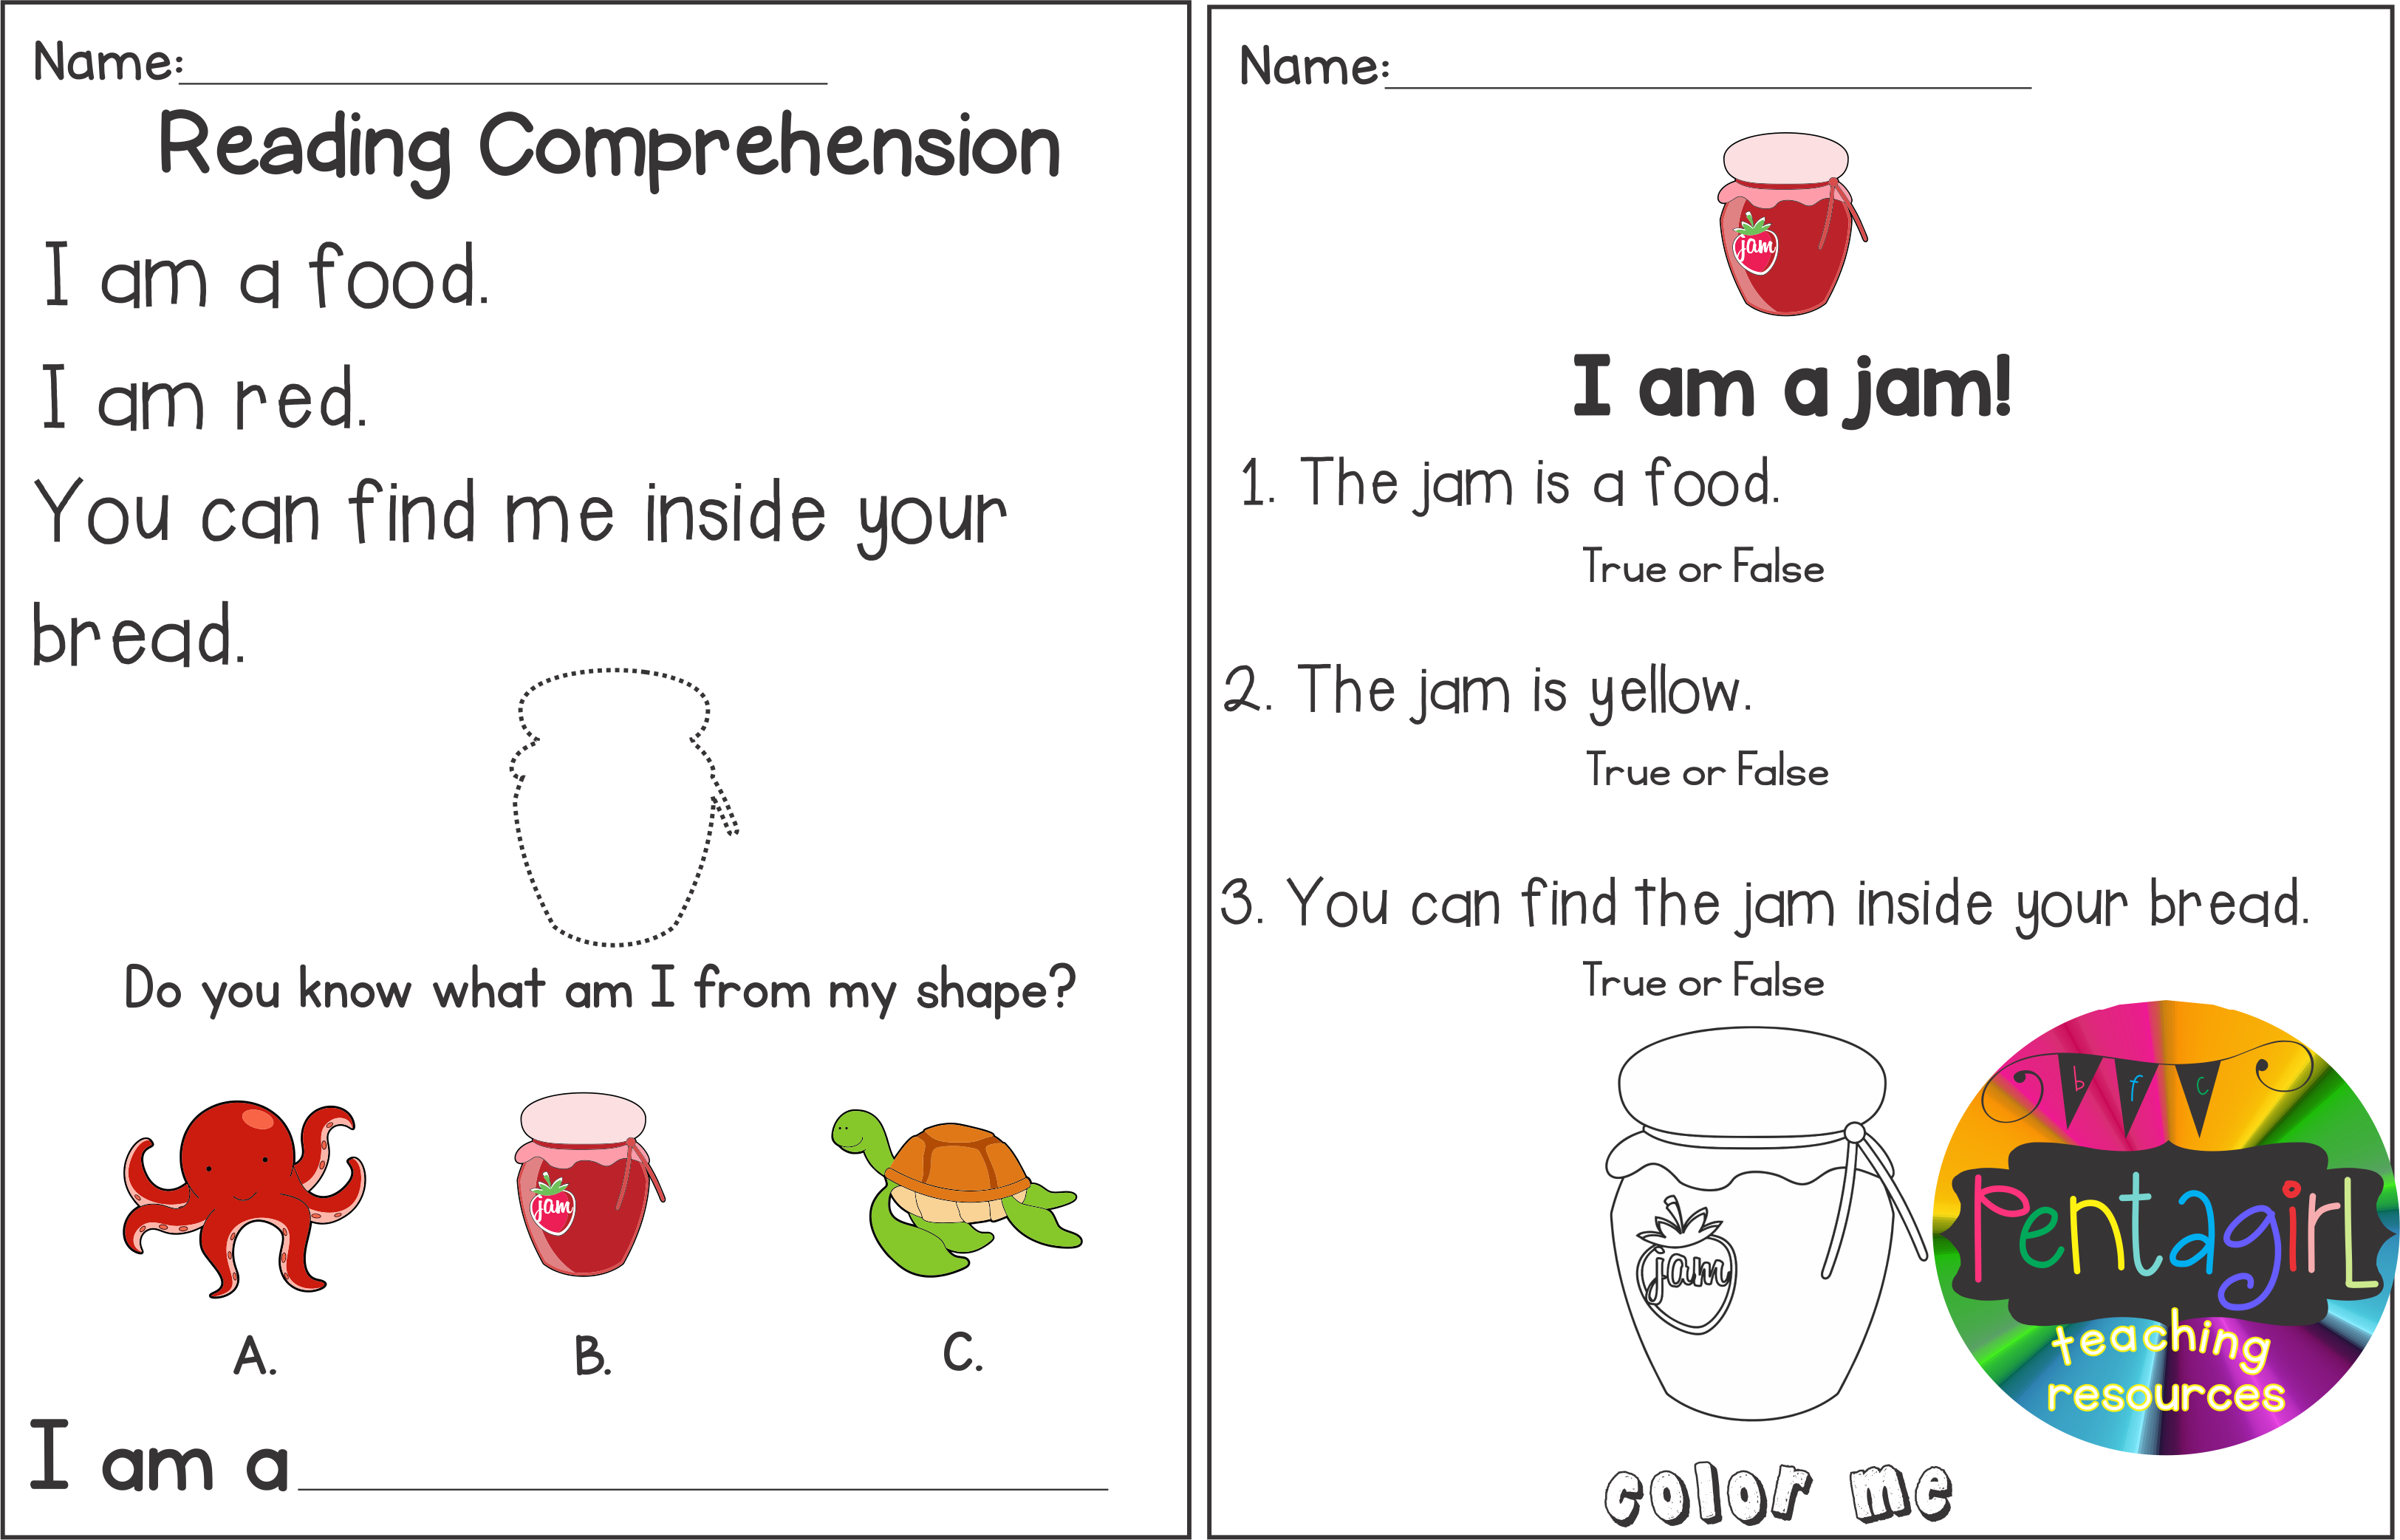 Kindergarten And 1st Grade Activities Reading Comprehension And Riddles